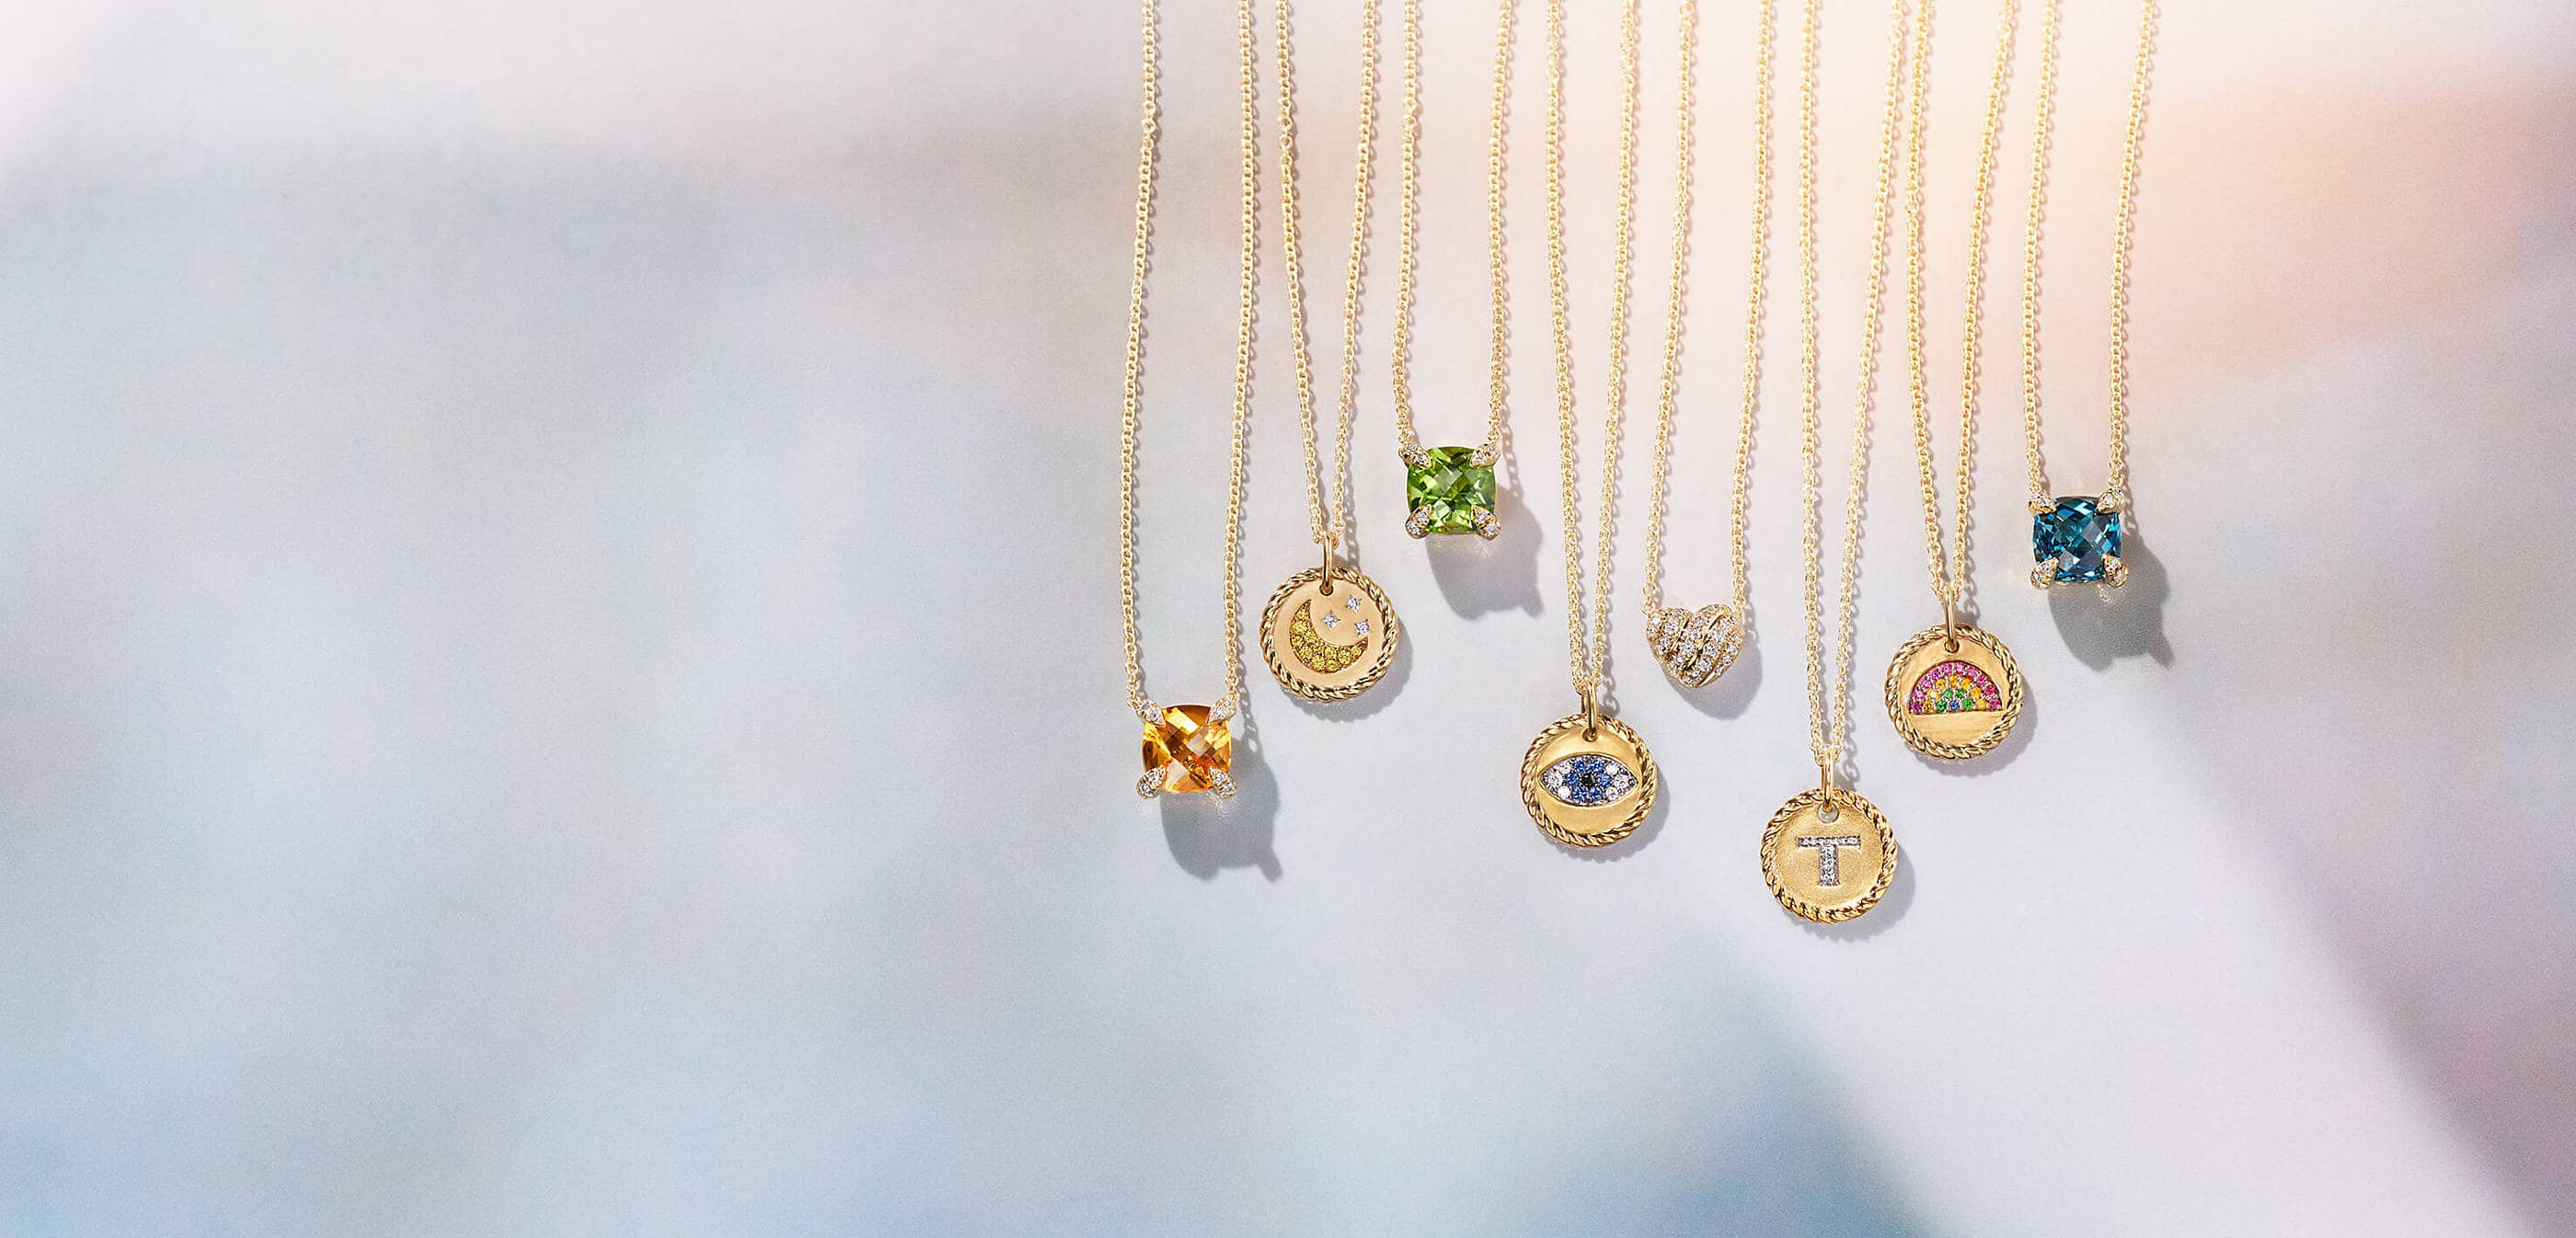 A color photo shows a row of eight David Yurman women's pendant necklaces hanging in front of a white background with colorful reflections. The jewelry is crafted from 18K yellow gold with pavé diamonds. Three of the necklaces feature a cushion-shaped center stone of Madeira citrine, peridot or Hampton blue topaz. The other necklaces depict a moon and stars, an evil eye, the letter T or a rainbow with various colored gemstones. One necklace is shaped like a heart.